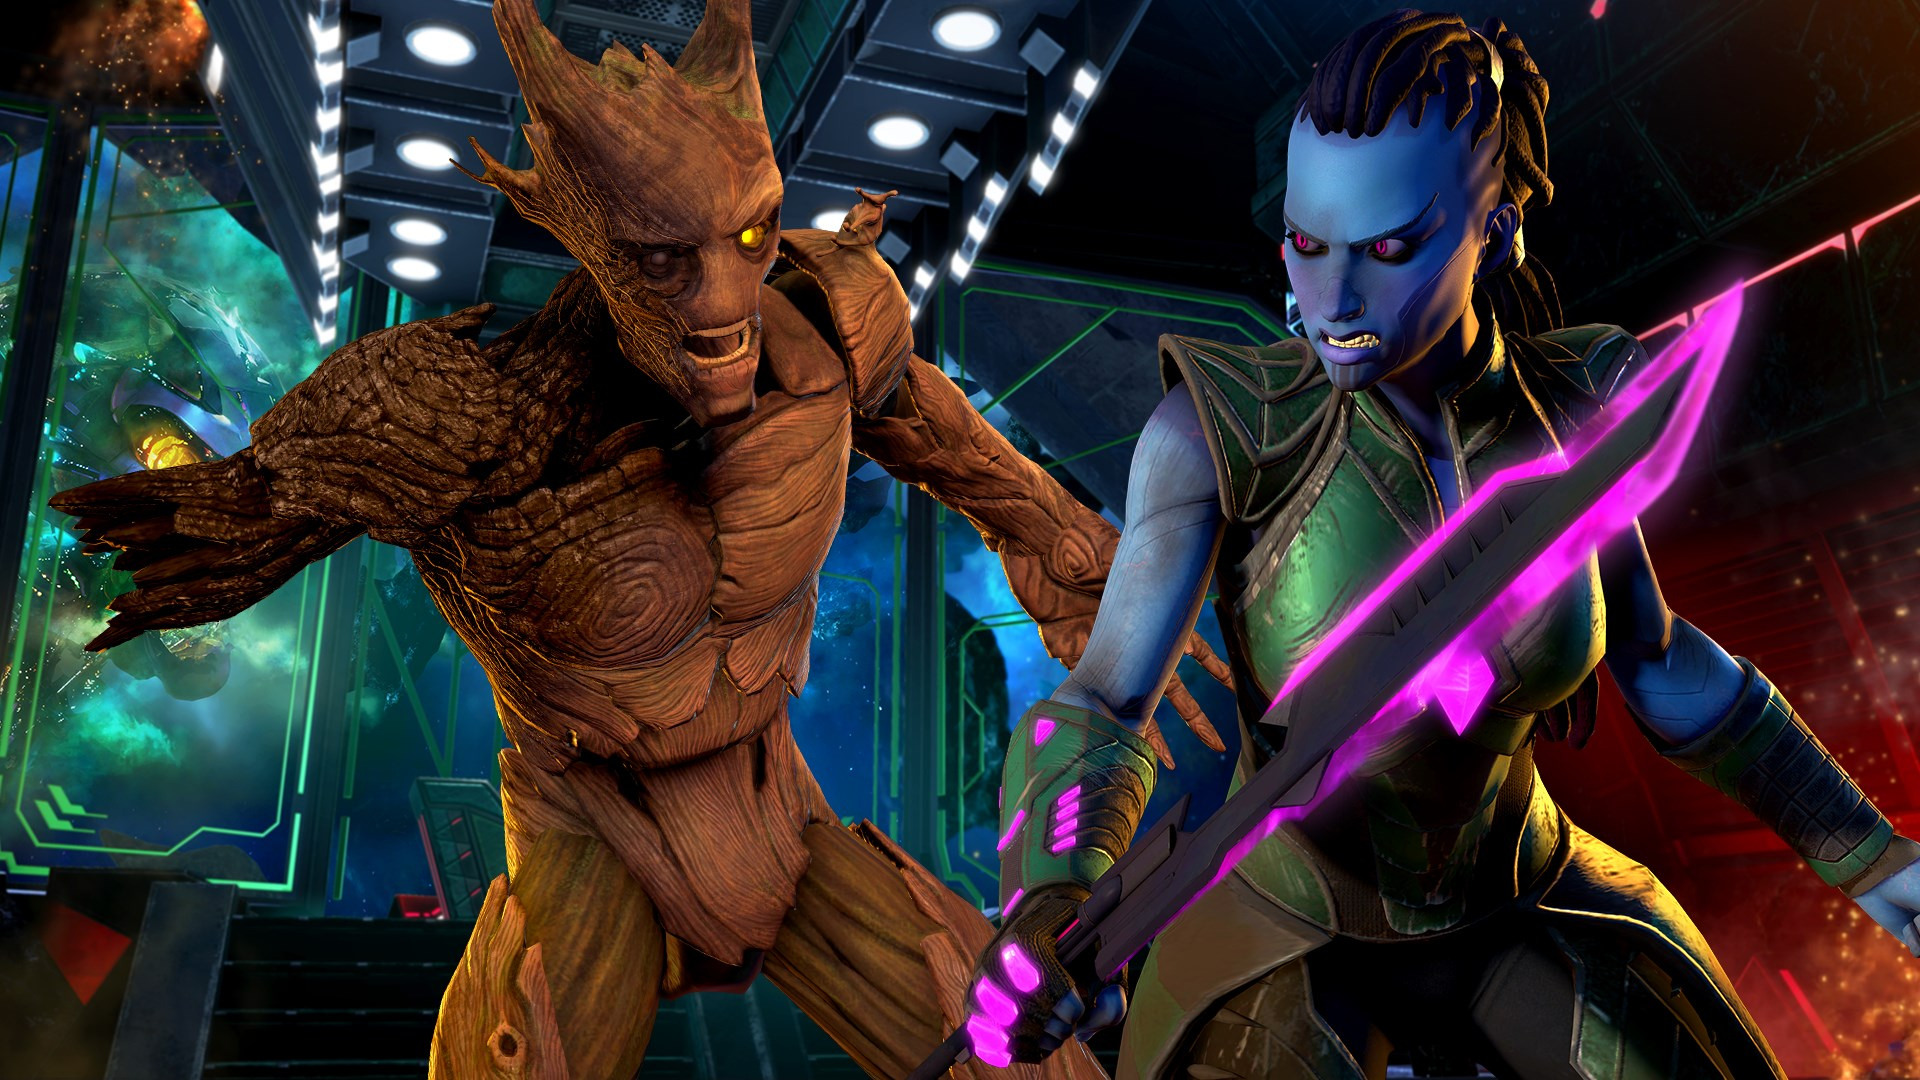 Marvel's Guardians of the Galaxy: The Telltale Series - Episode 5